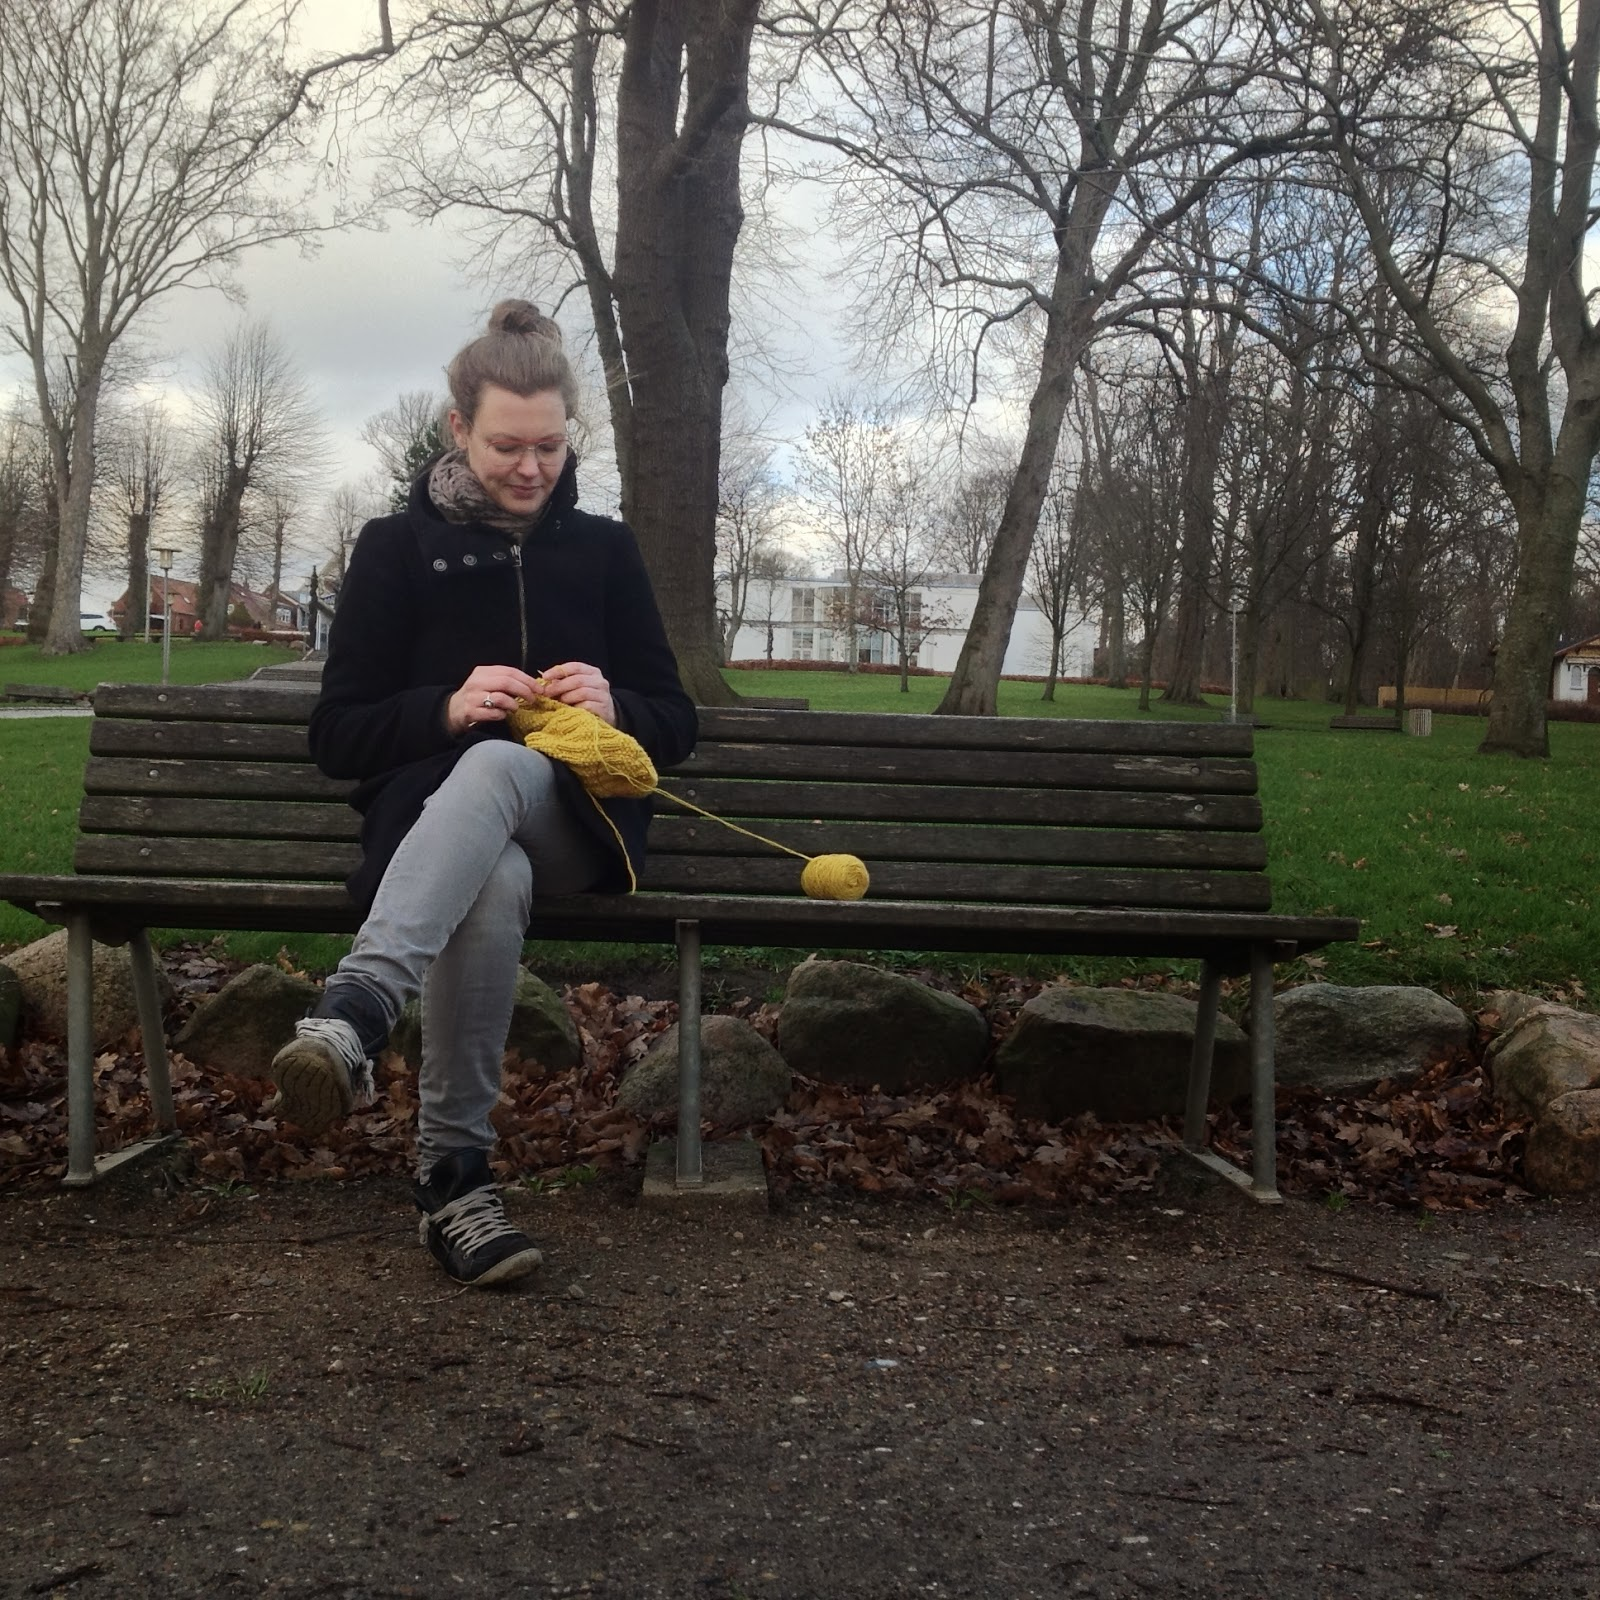 Trine Kok, knitting in the park